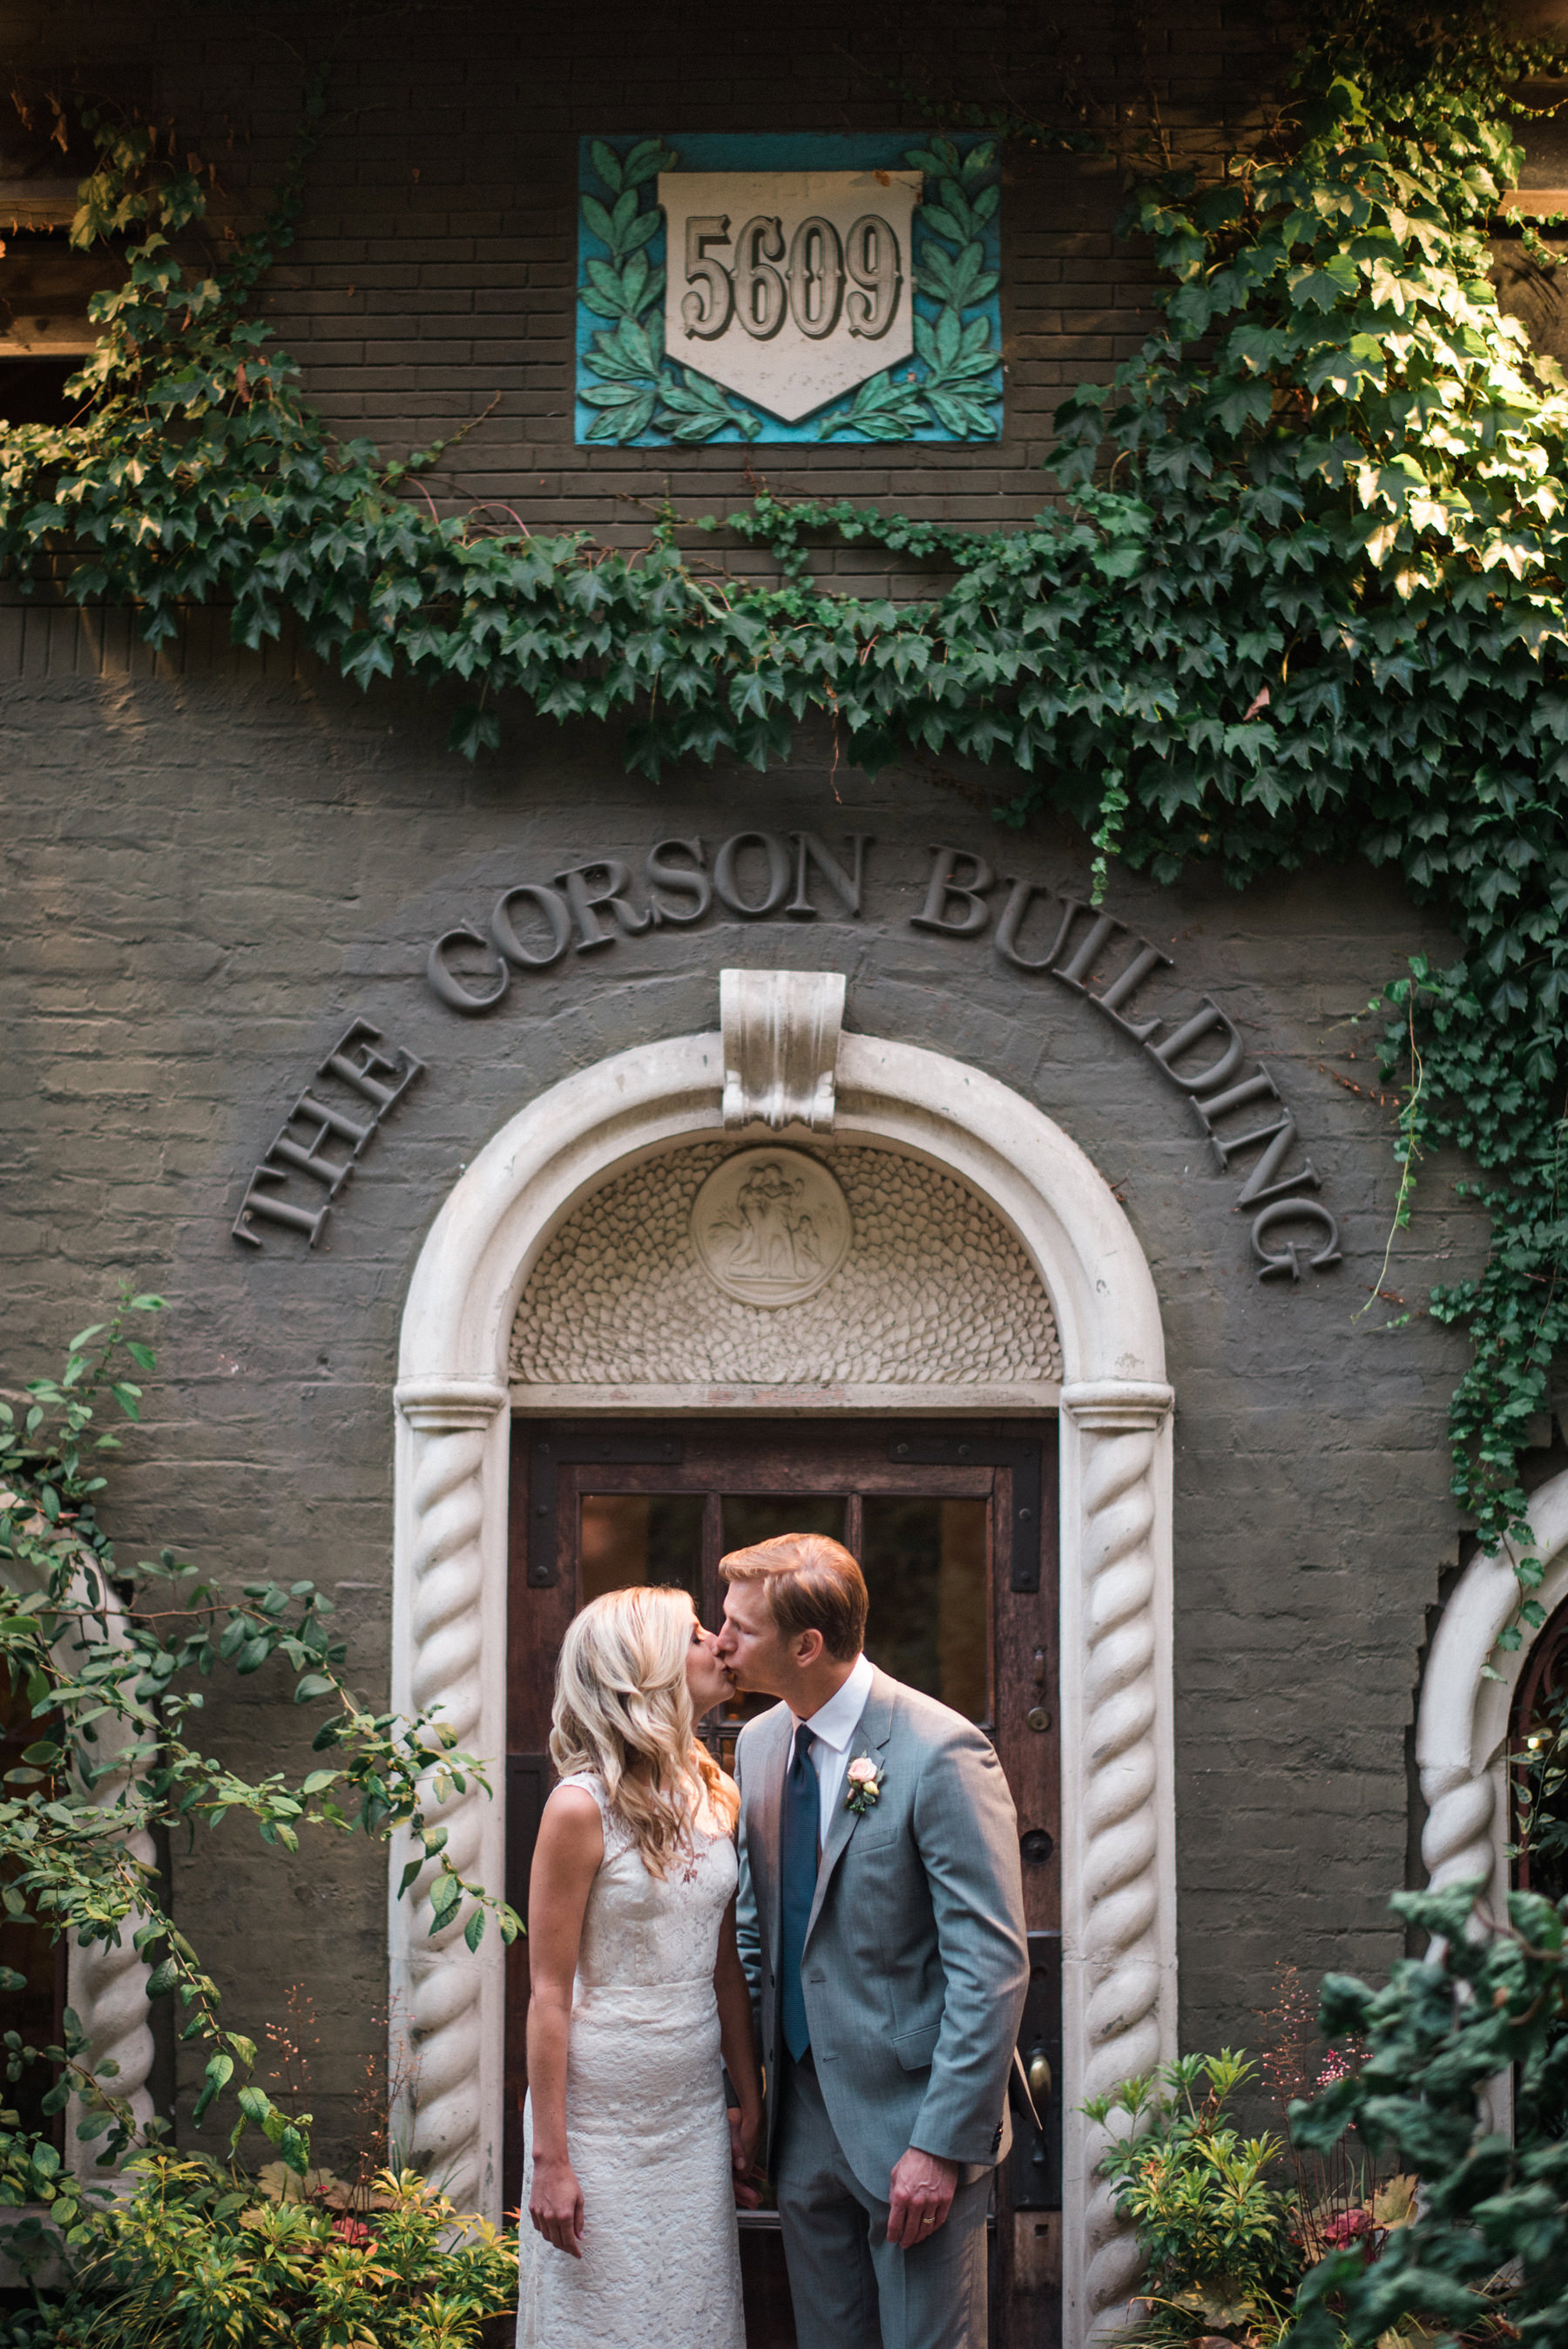 225-outdoor-wedding-at-the-corson-building-in-seattle.jpg